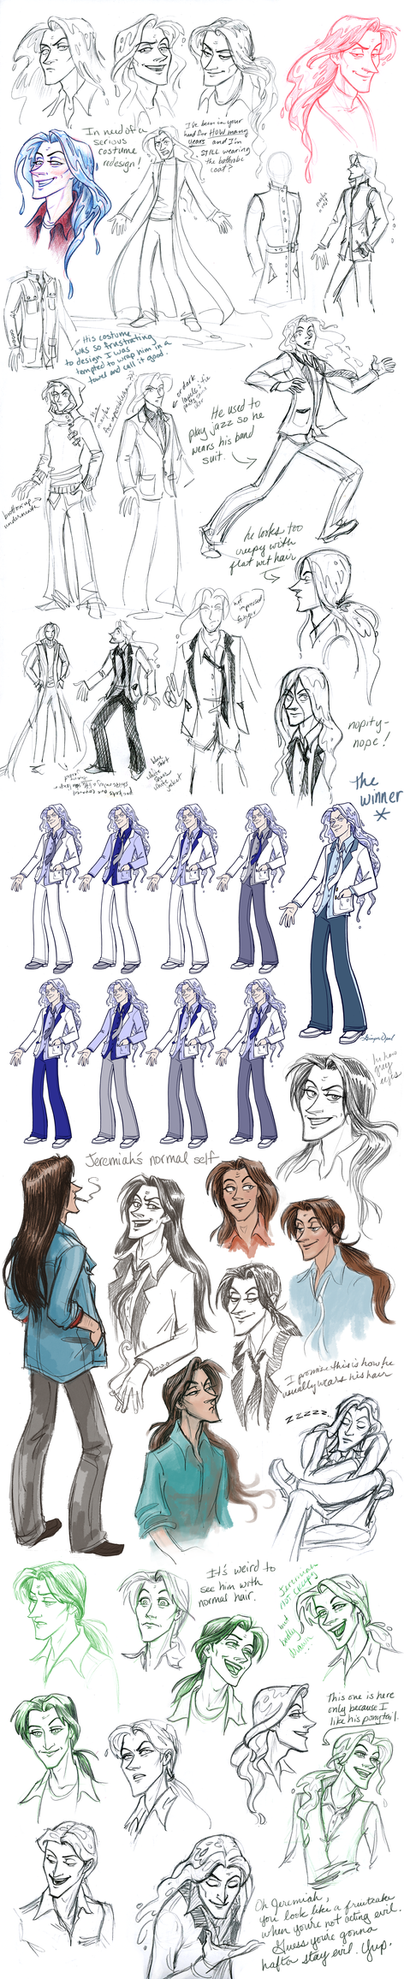 Solidifying Jeremiah's Character Design by GingerOpal